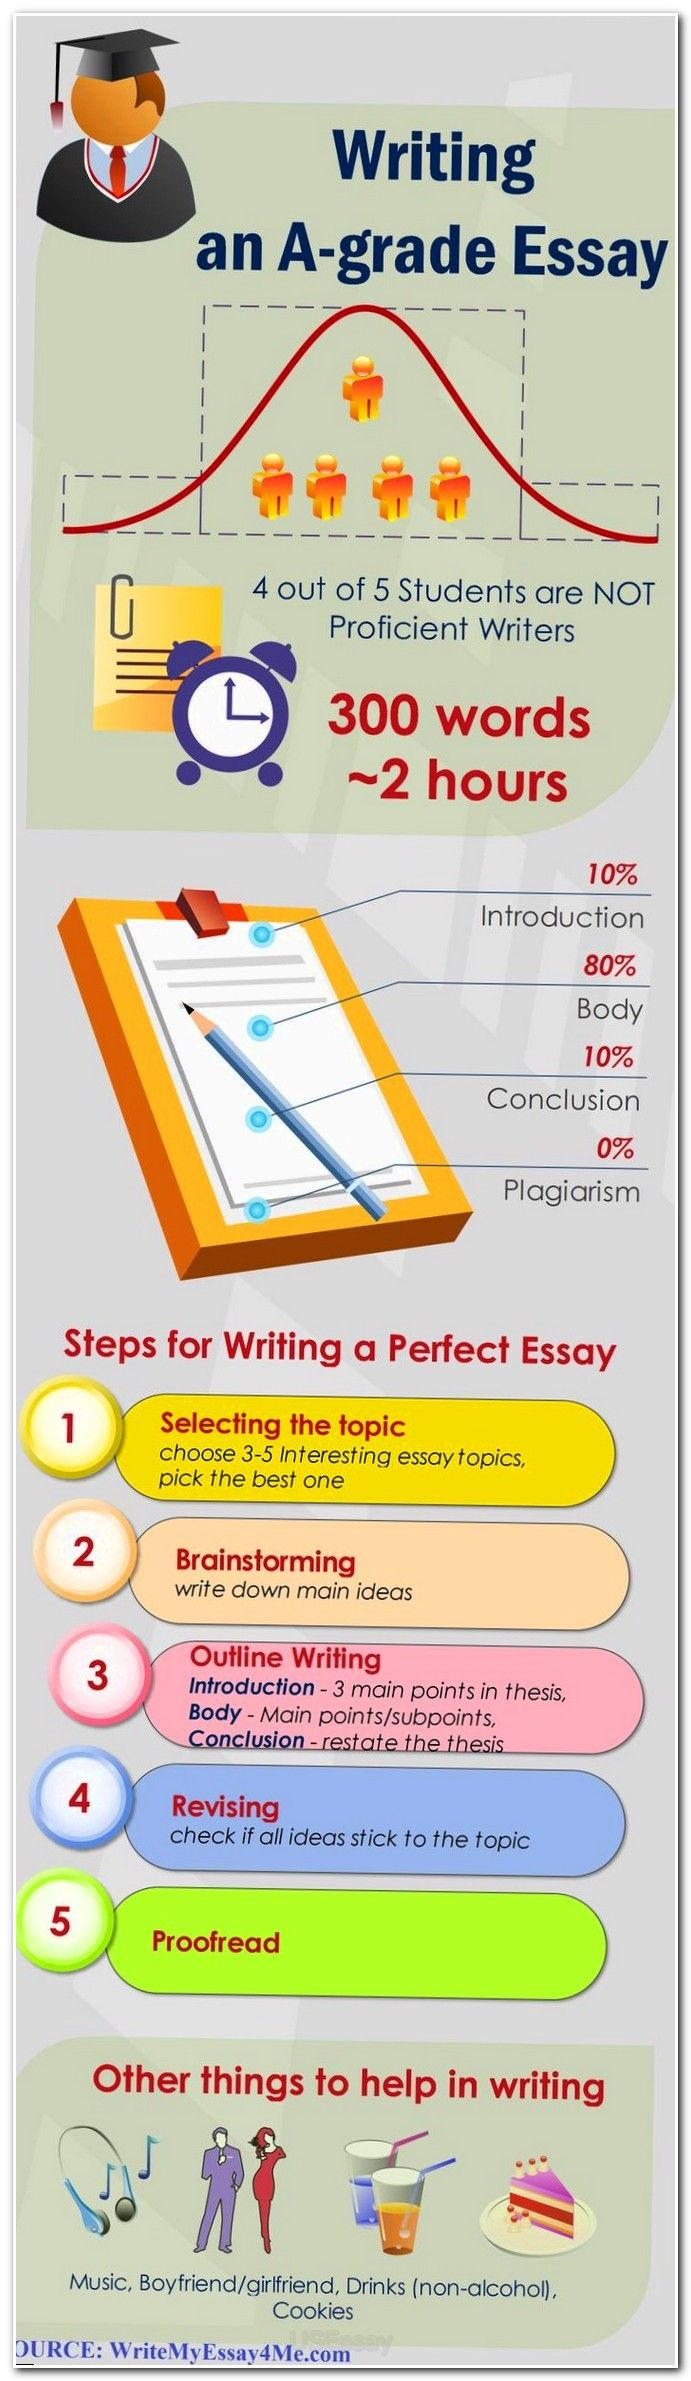 Help on essay writing good tips